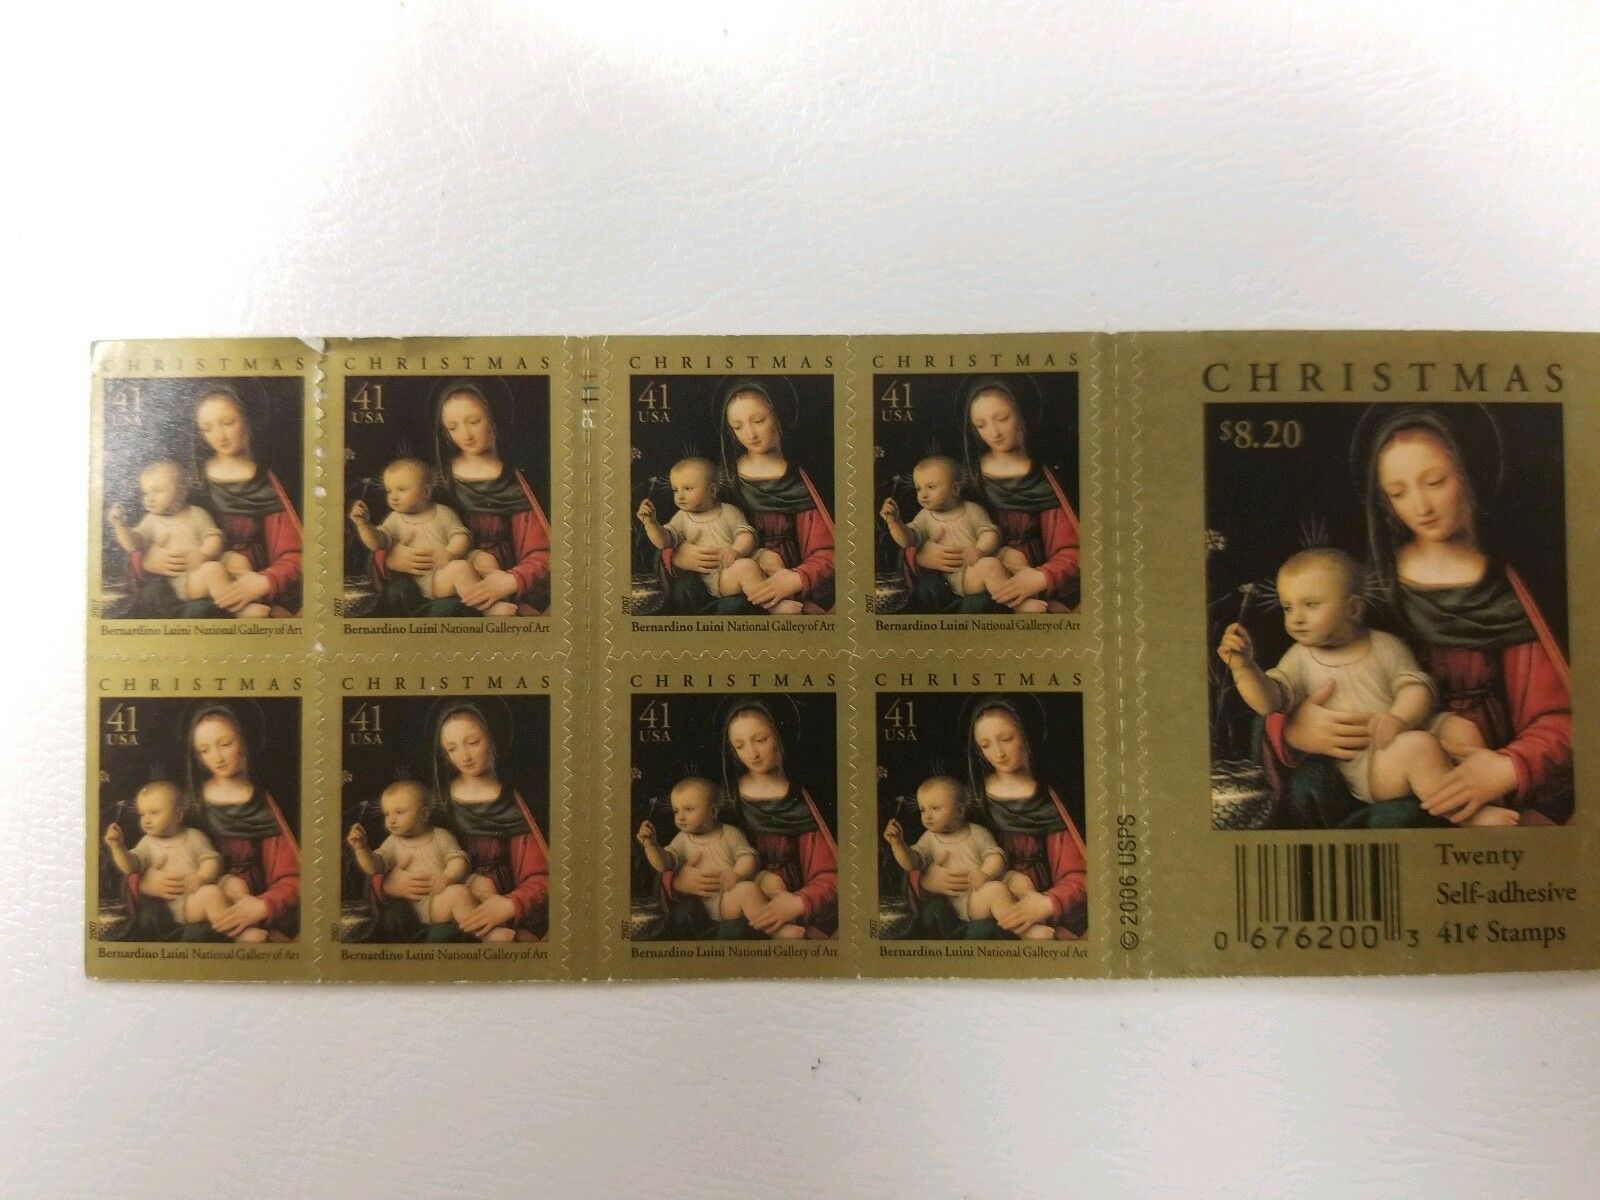 Primary image for Christmas 20/41 cent Self-Adhesive Stamps Bernardino Luini National Gallery 2006